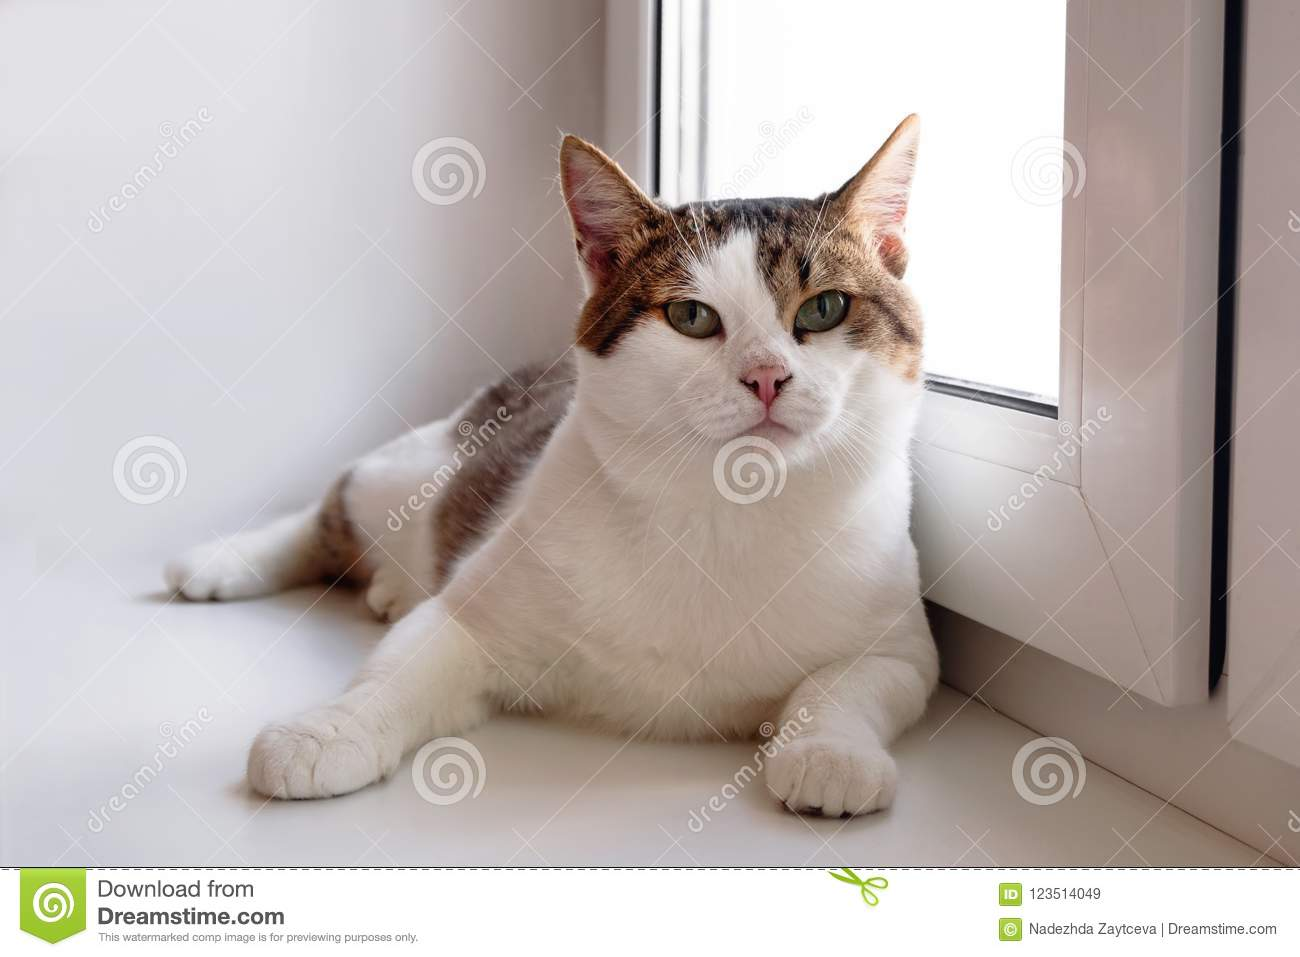 Adorable white tabby cat with green eyes is sitting near to the window and looking into the camera.